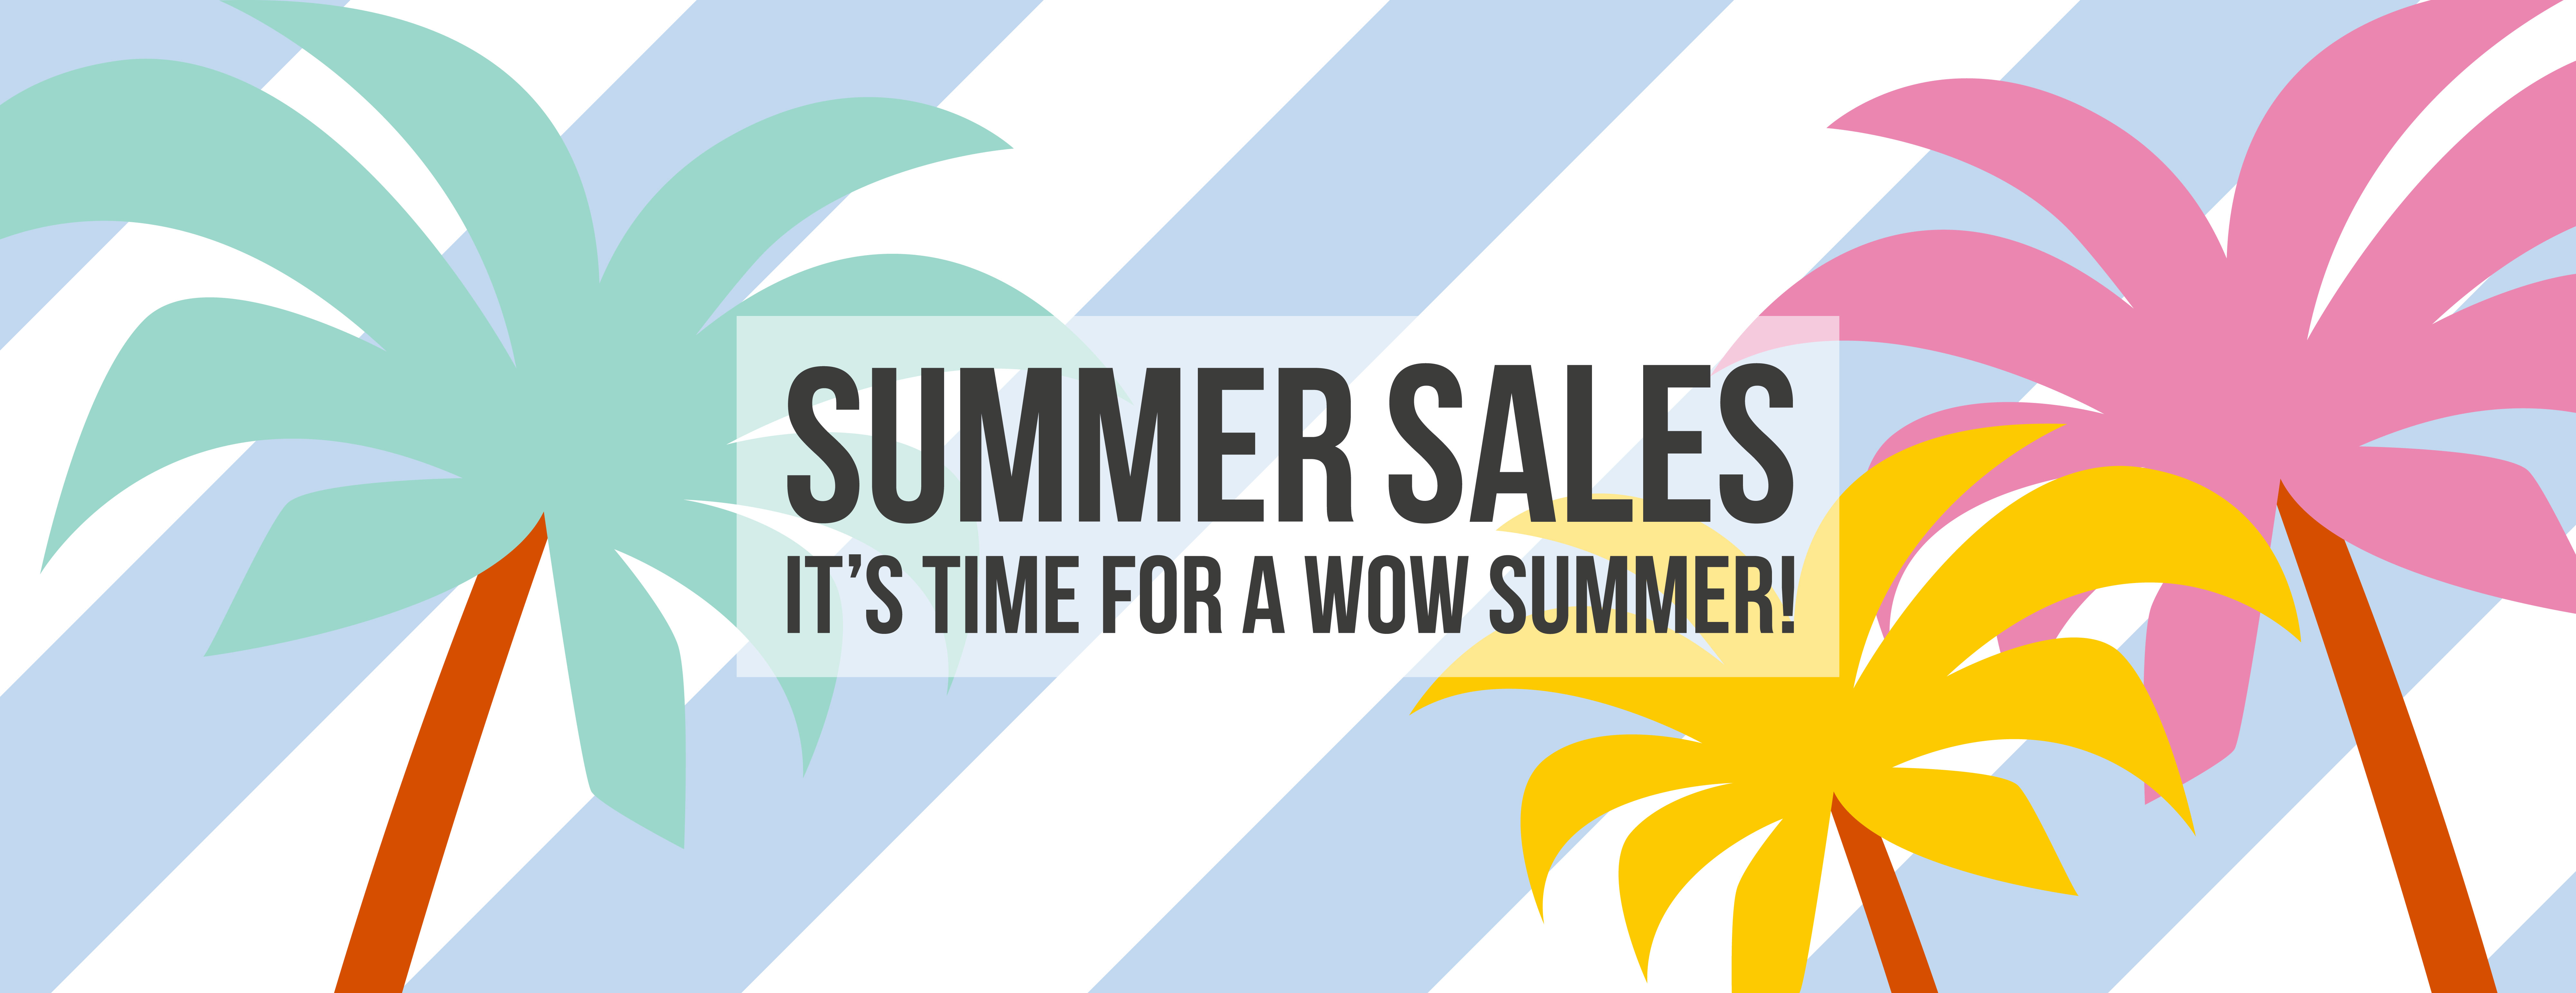 Summertime sales